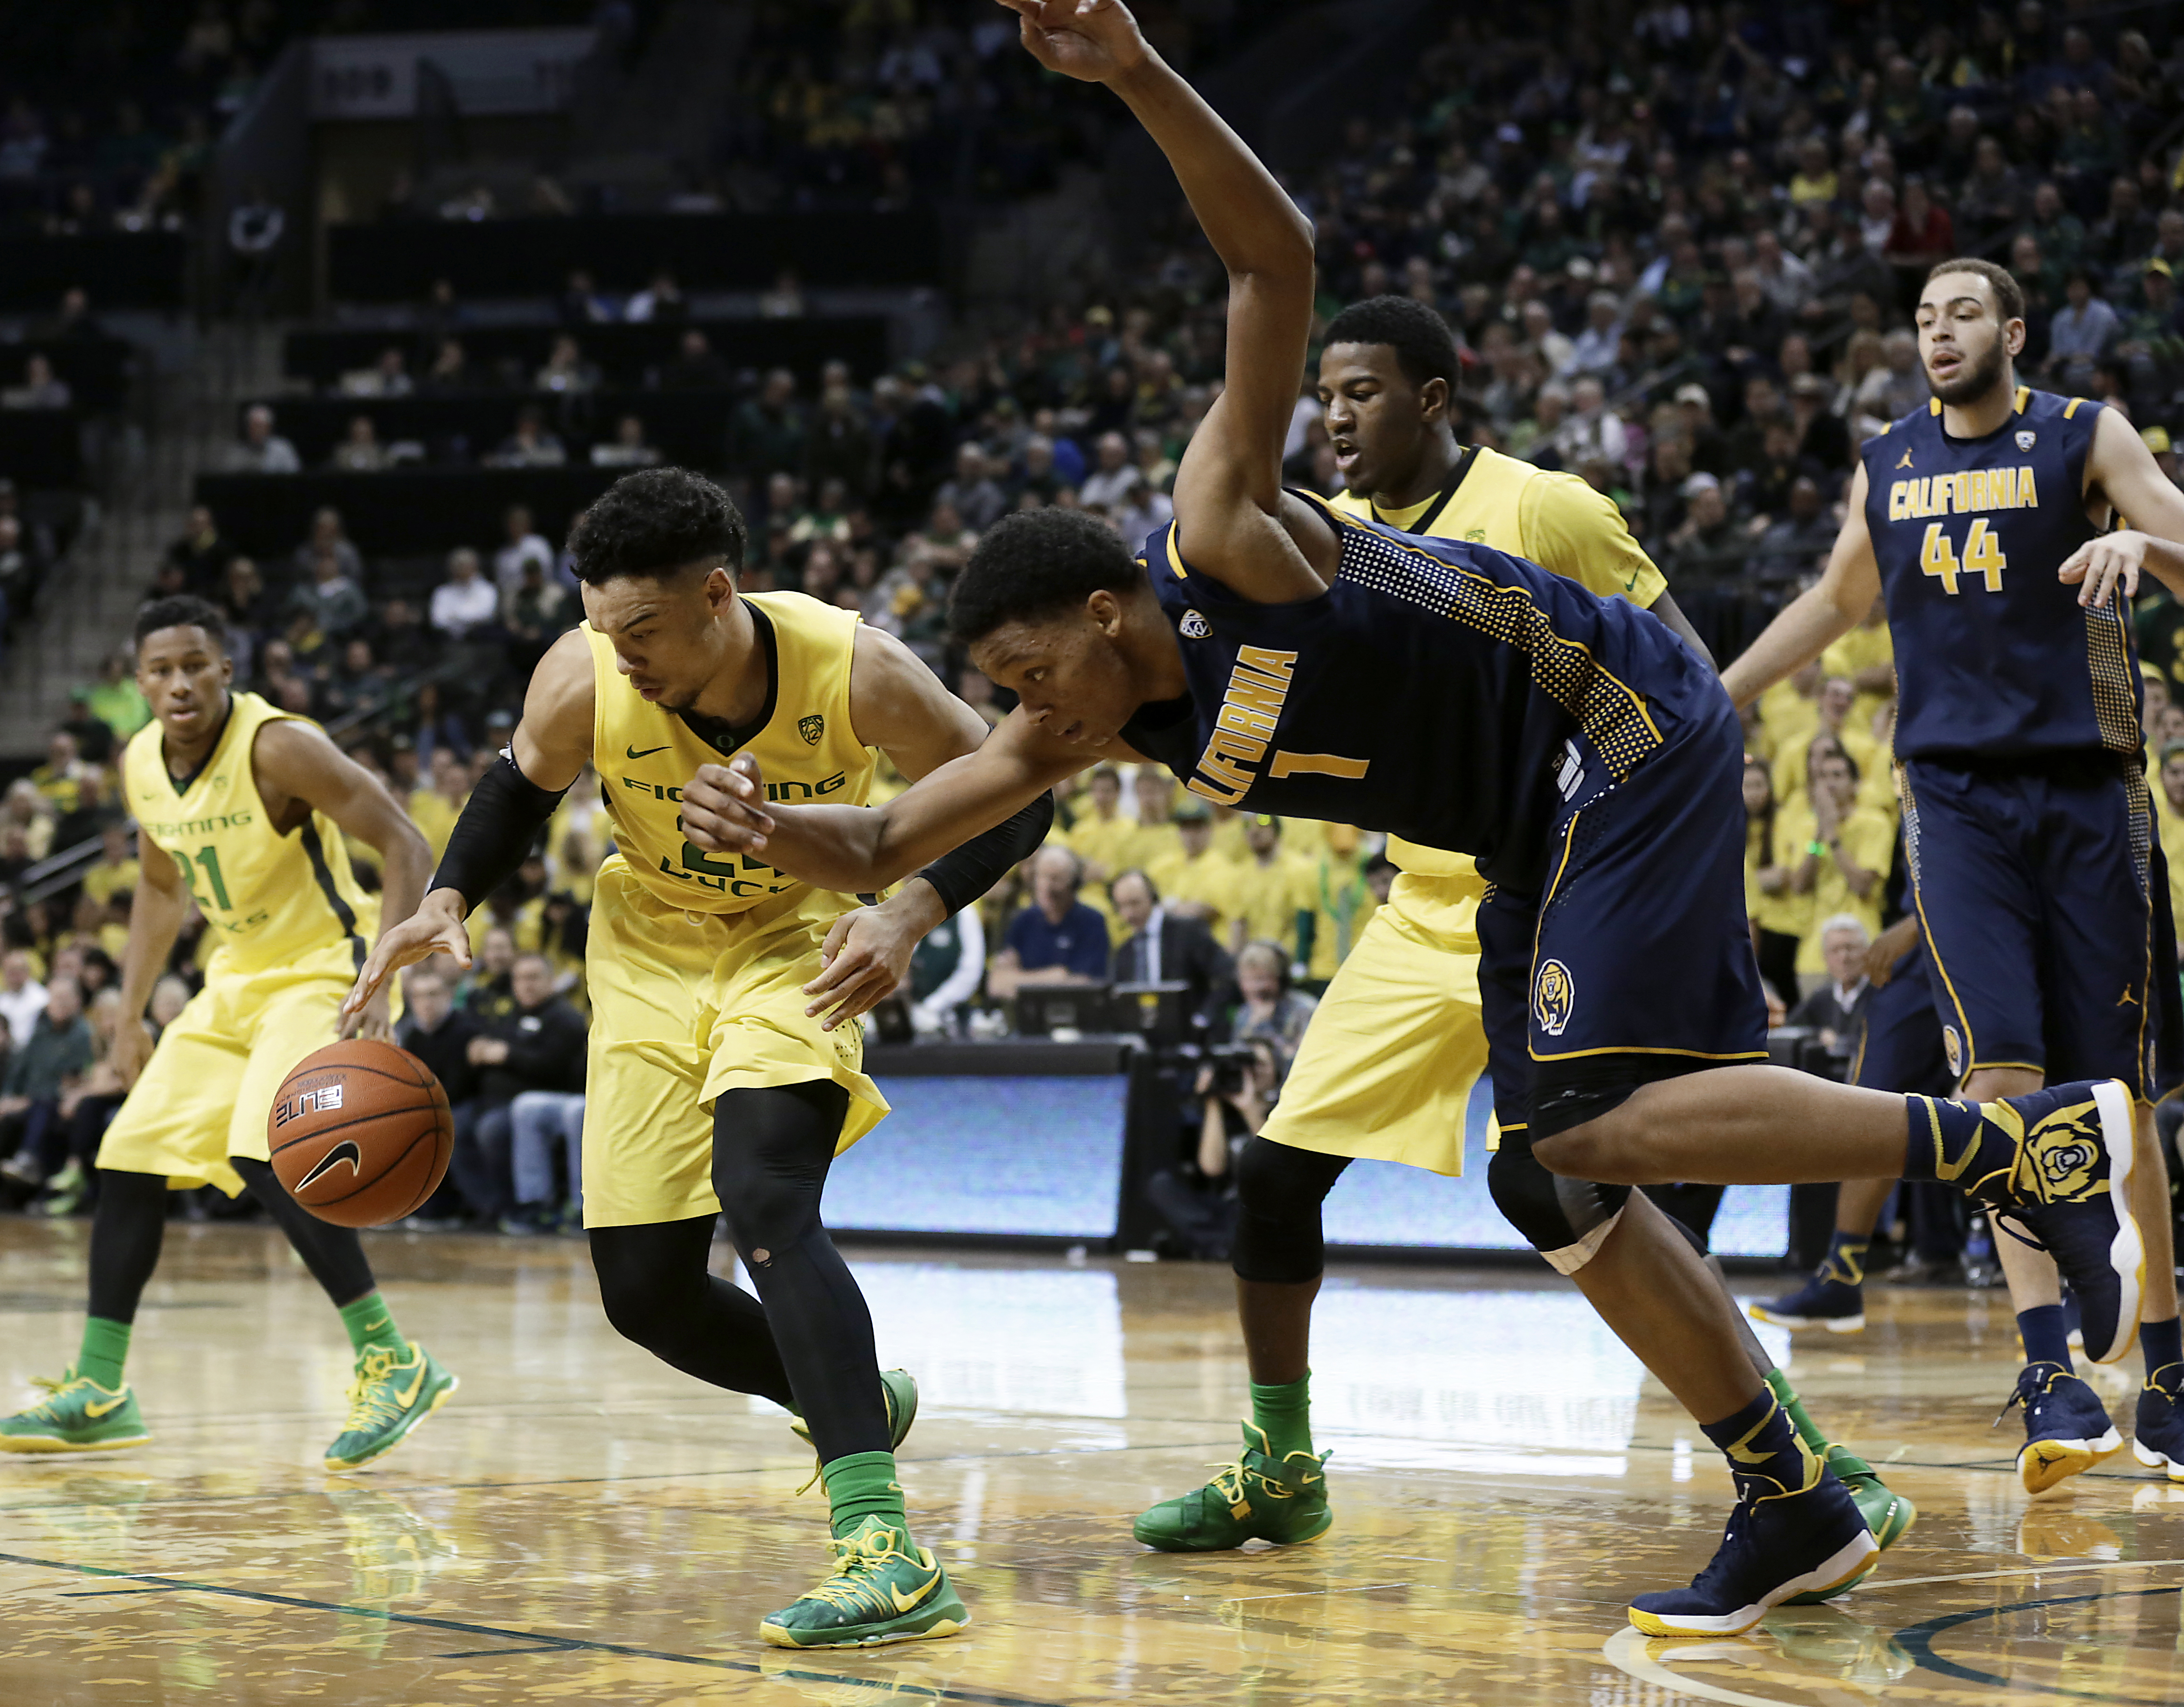 Oregon's Dillon Brooks, left, steals the ball from California's Ivan Rabb, right, during the second half of an NCAA college basketball game Wednesday, Jan. 6, 2016, in Eugene, Ore. (AP Photo/Ryan Kang)